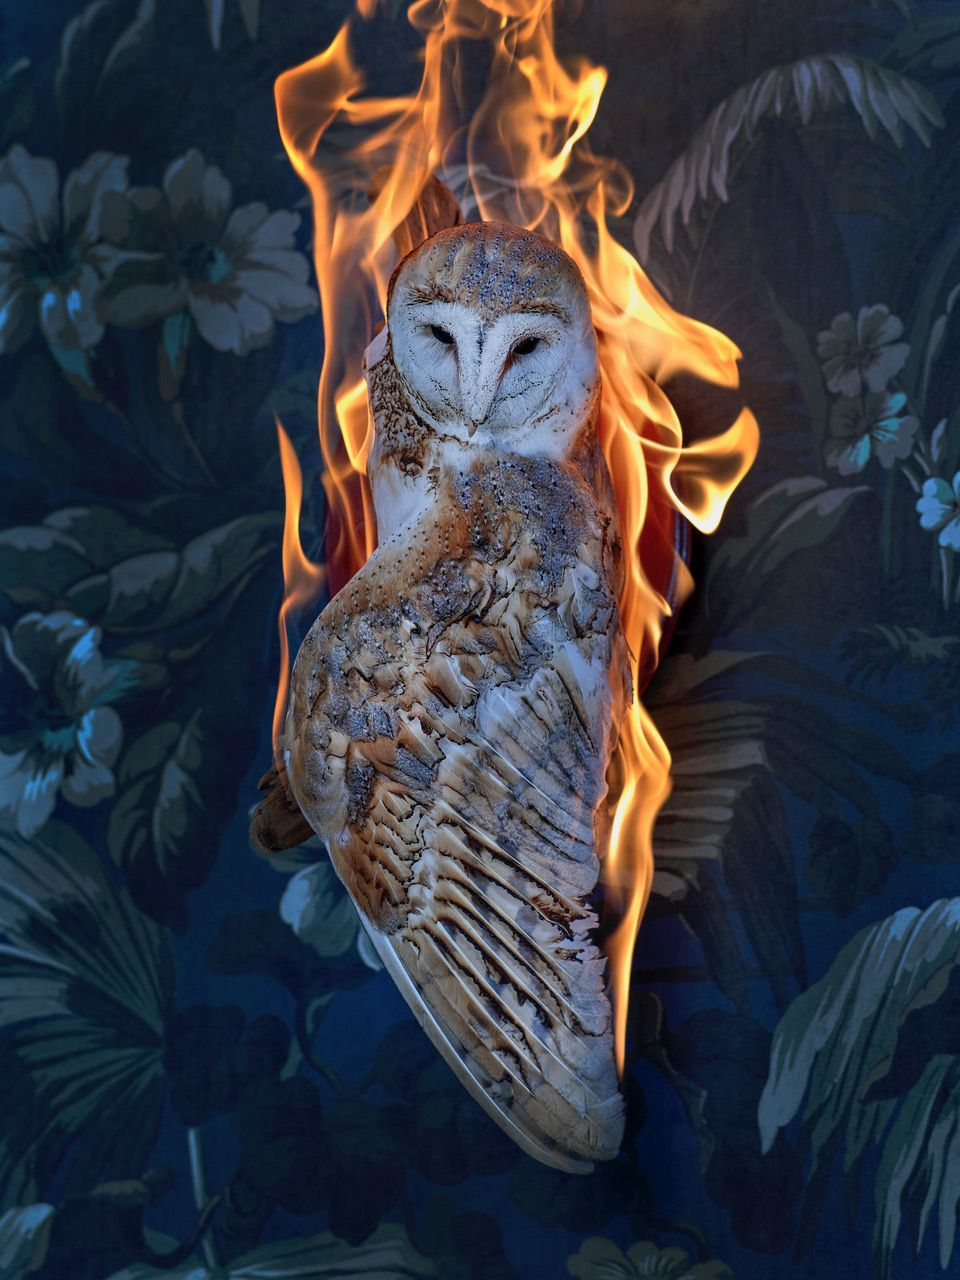 Photography - Christian Houge - Owl, Residence of Impermanence series